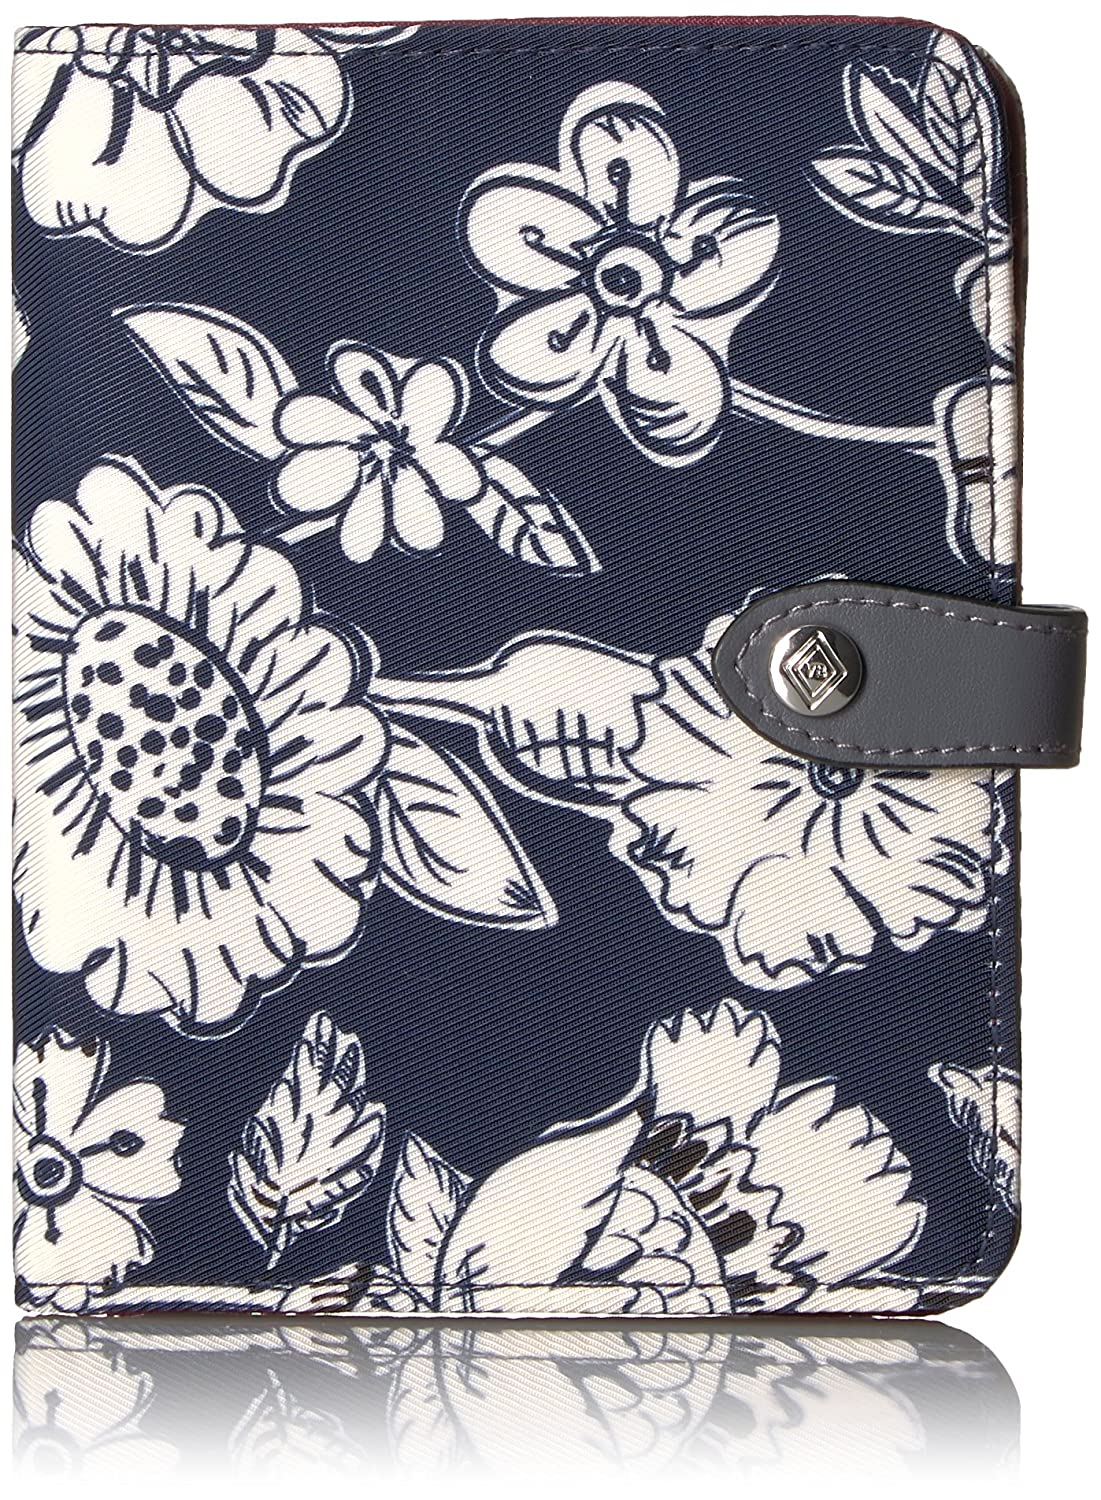 Vera Bradley Women's Midtown RFID Passport Wallet, Midnight Floral, One Size 22548